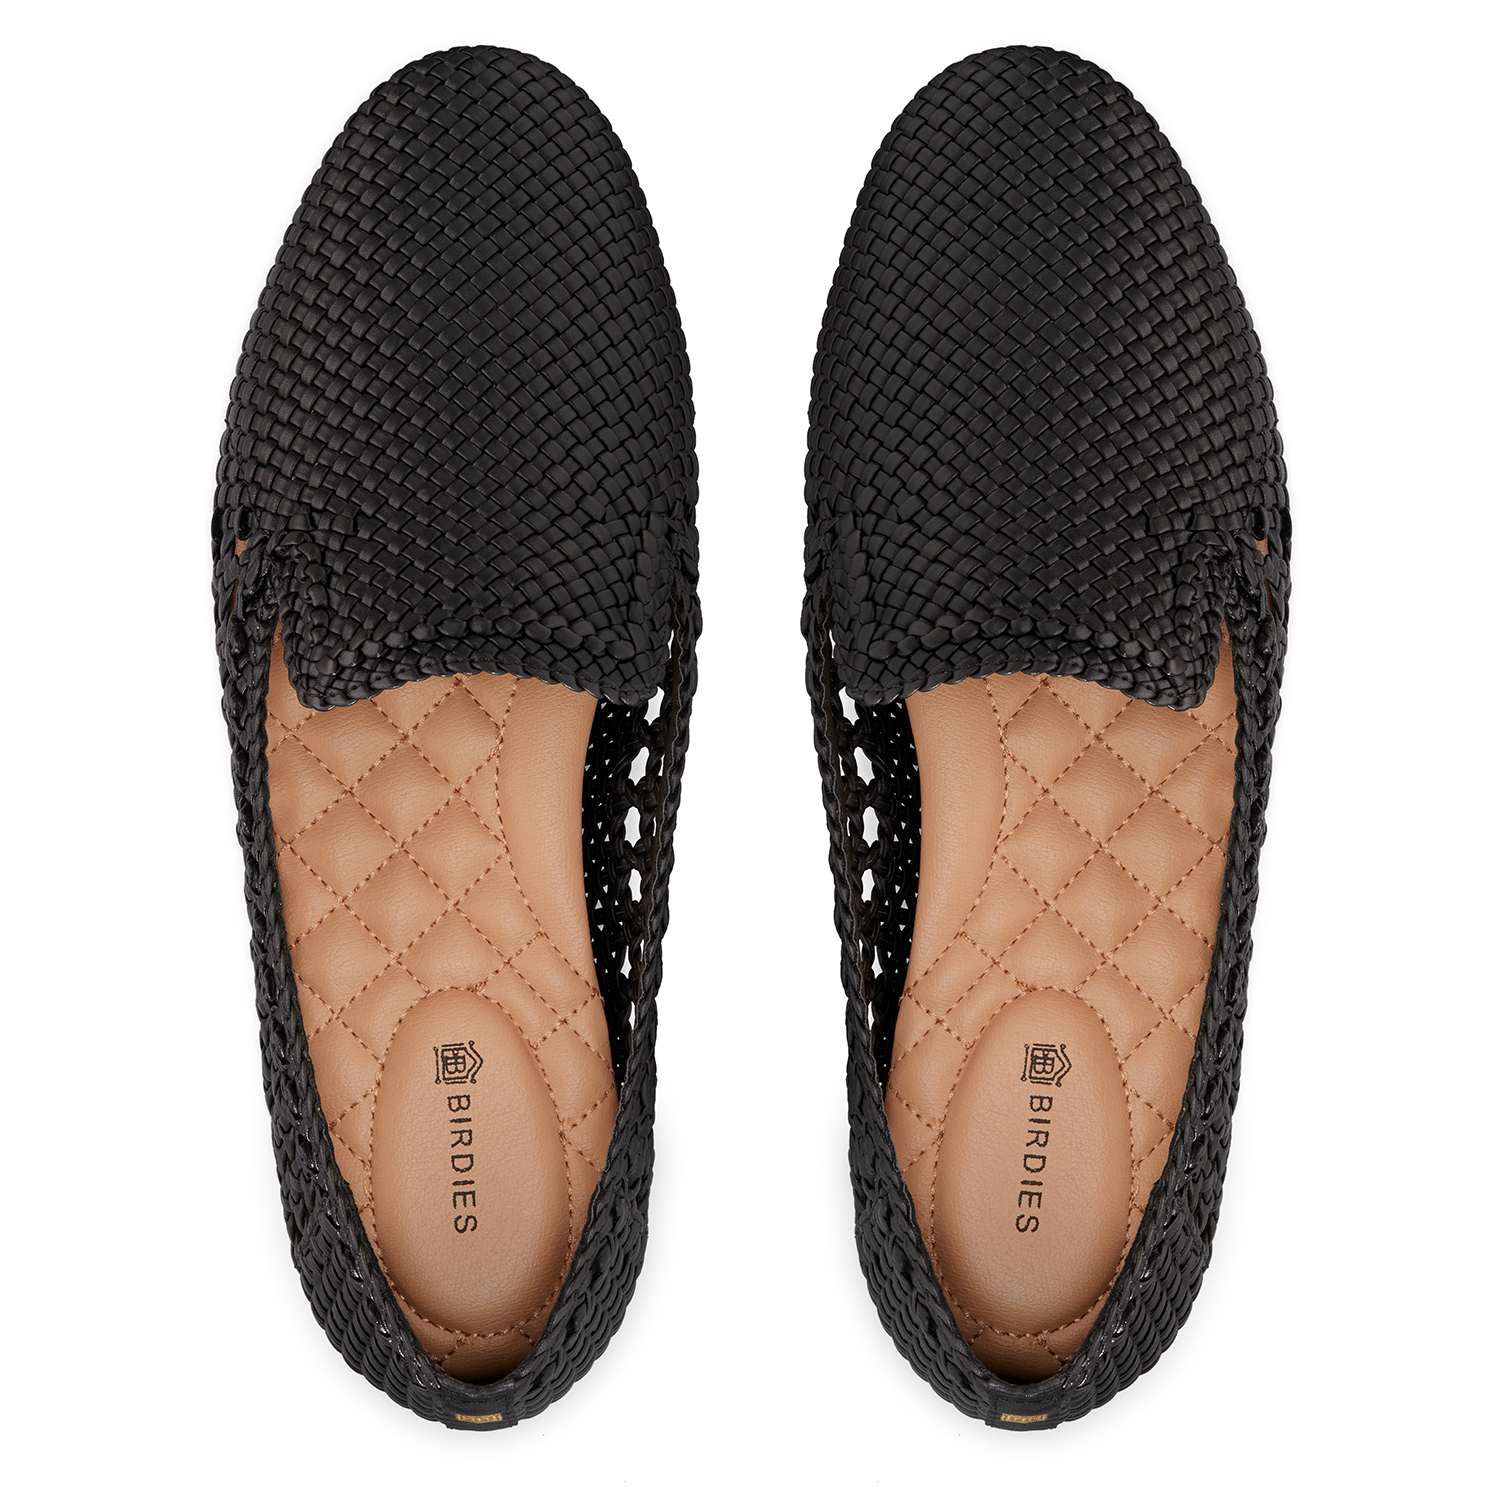 Starling Woven Flats from Birdies